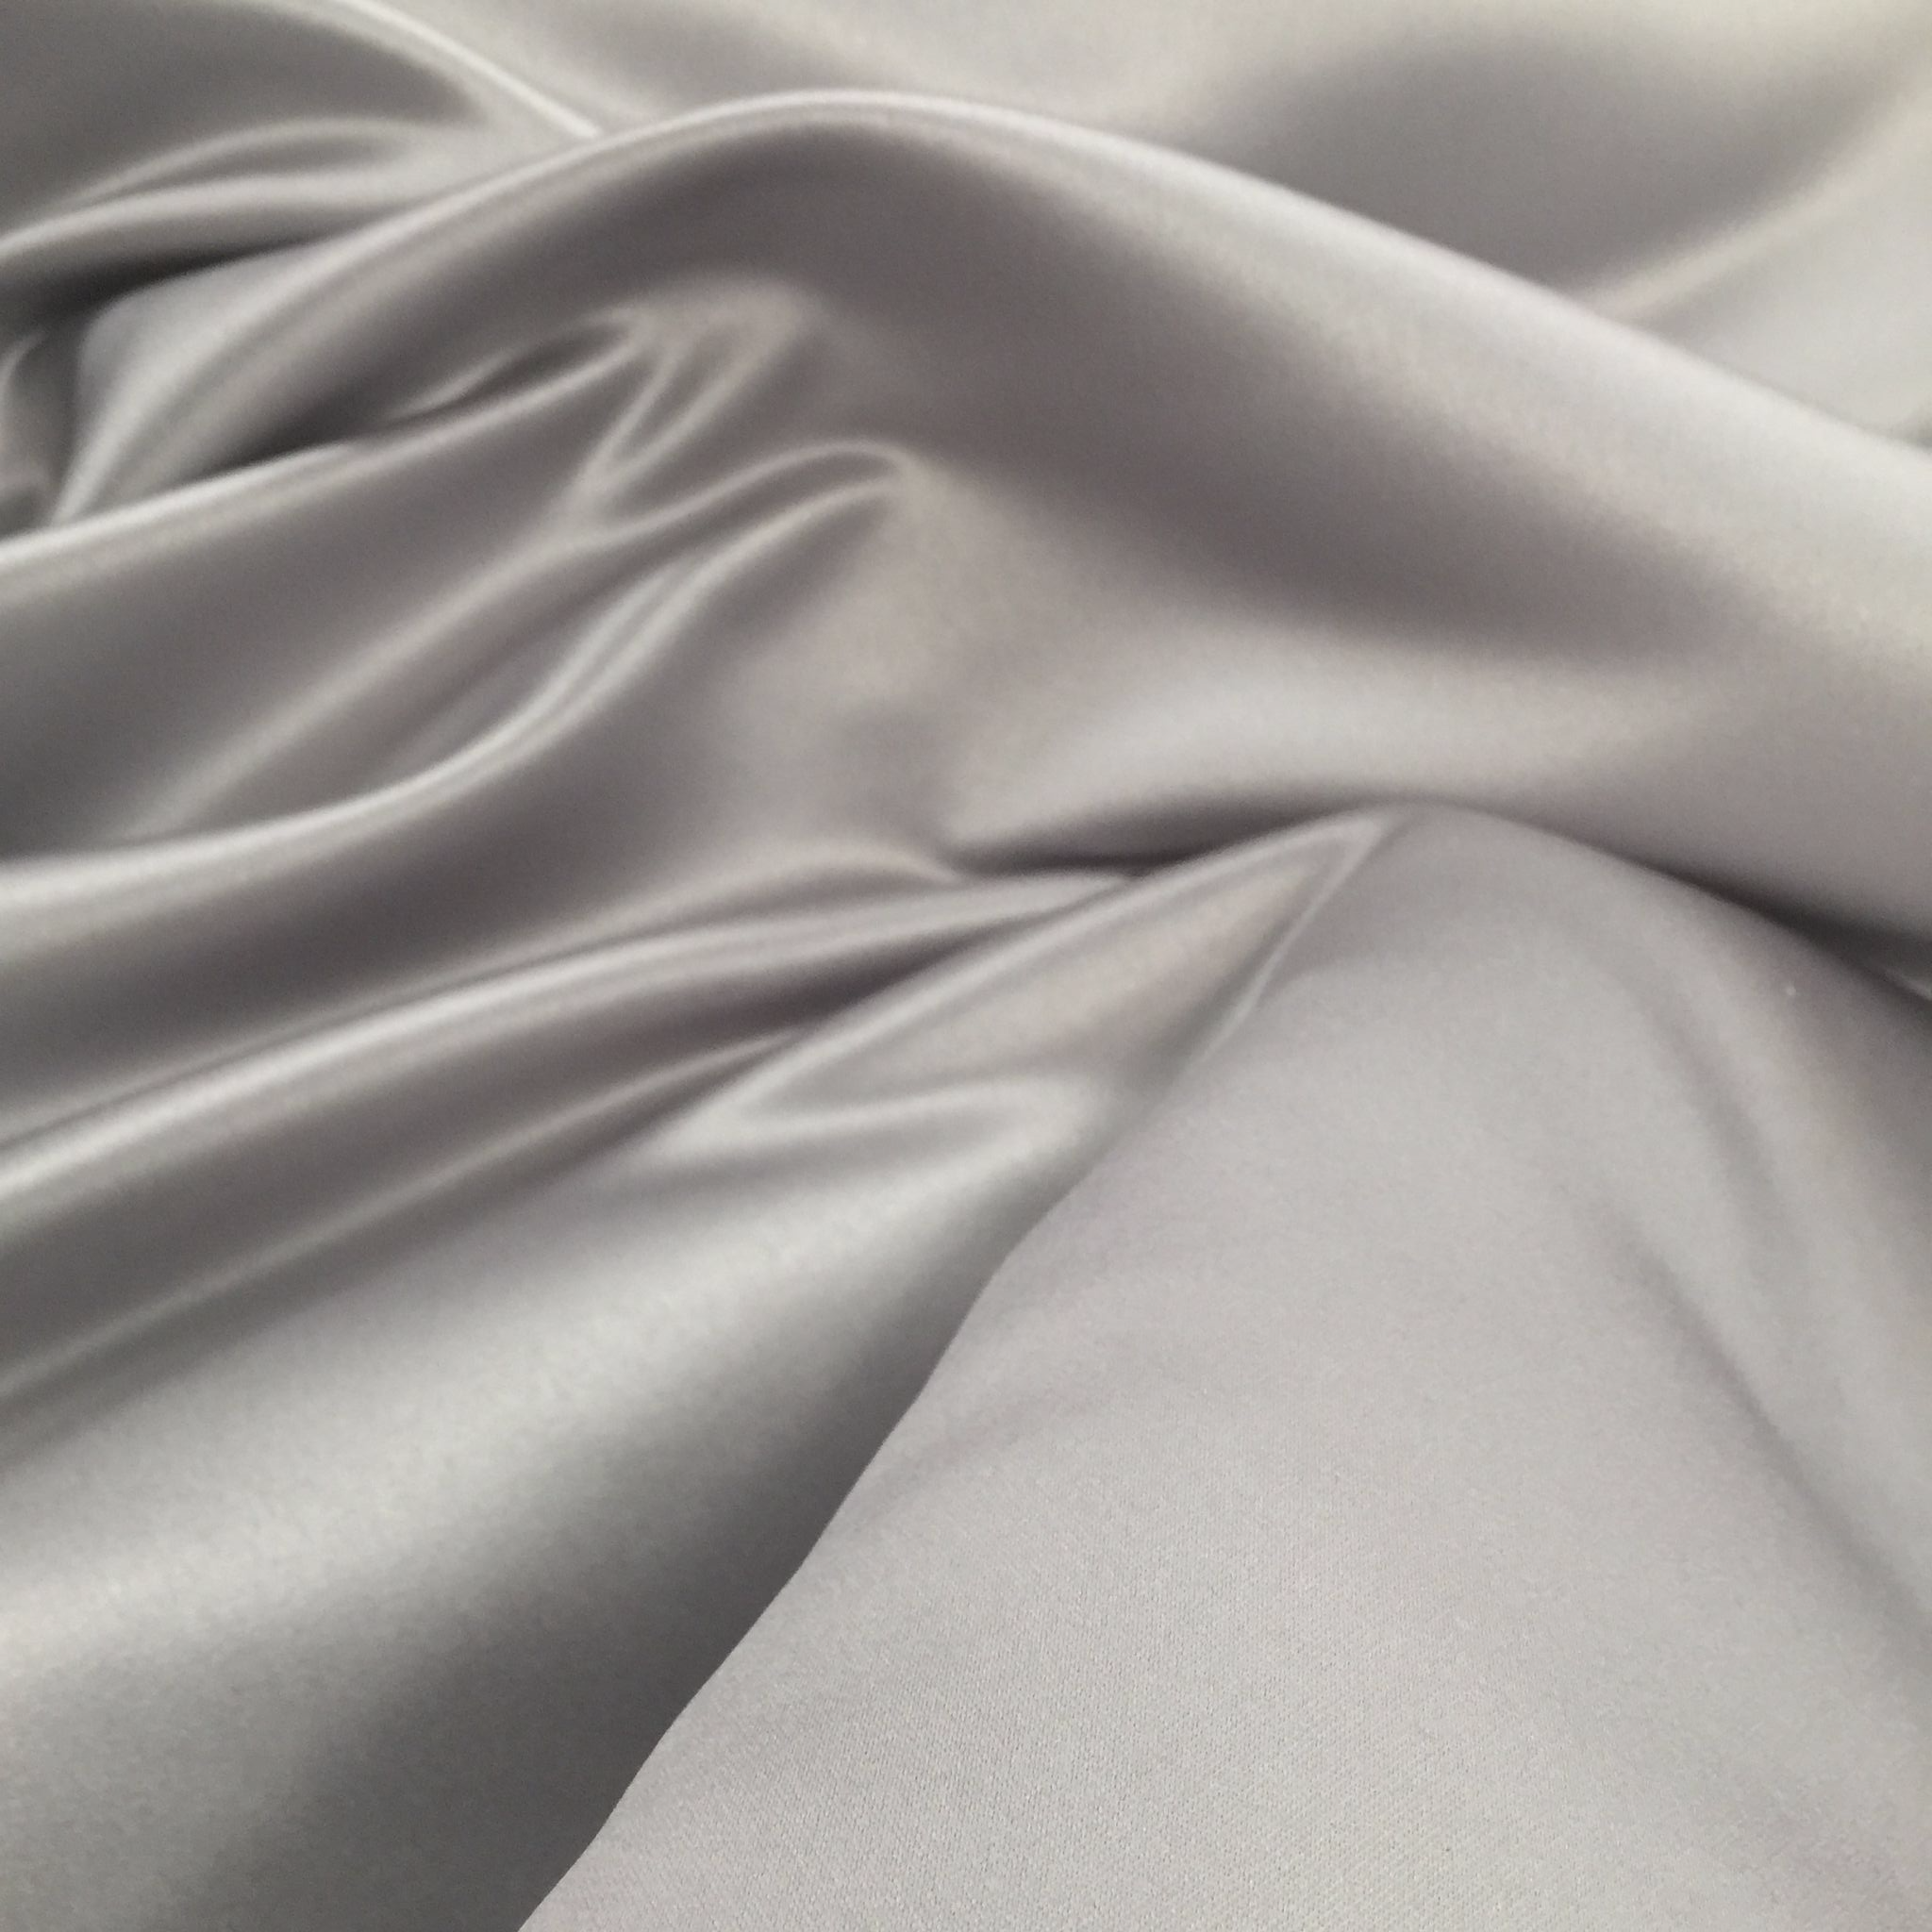 LUXURY Silver Duchess Satin Silky Polyester Fabric Material 150cm